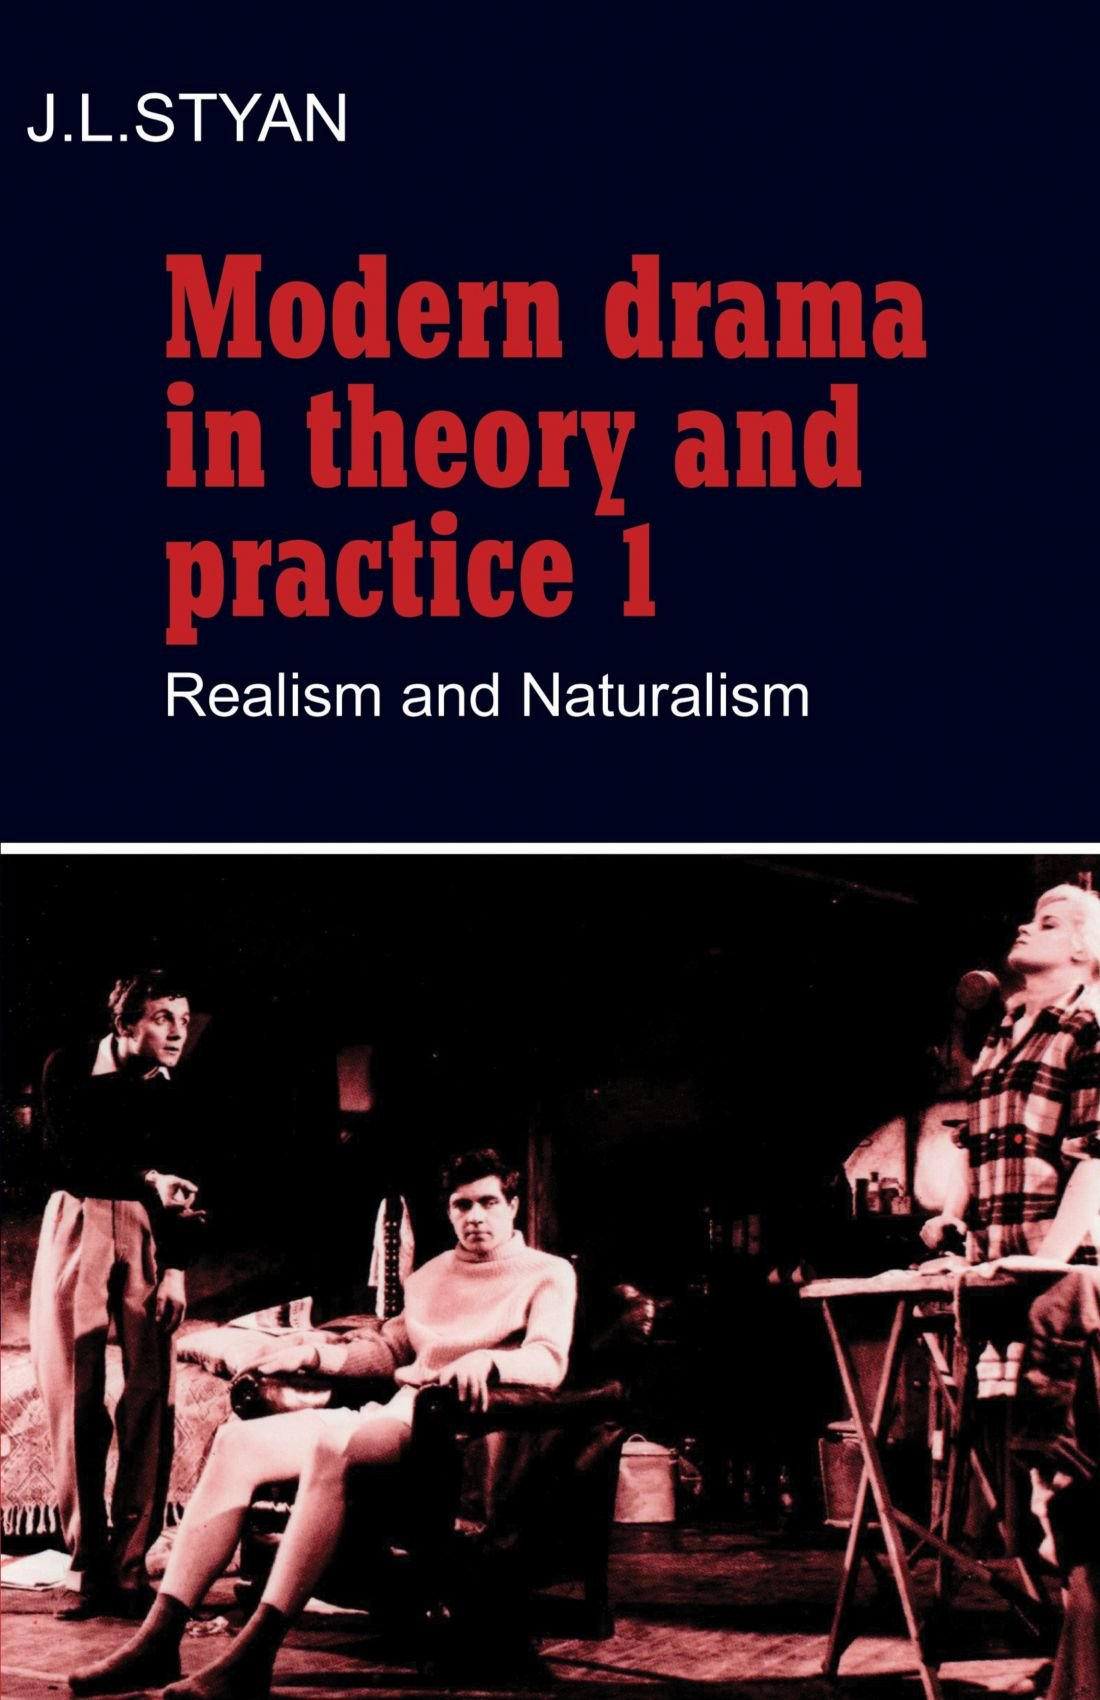 approaching the millennium essays on angels in america theater modern drama in theory and practice 1 realism and naturalism